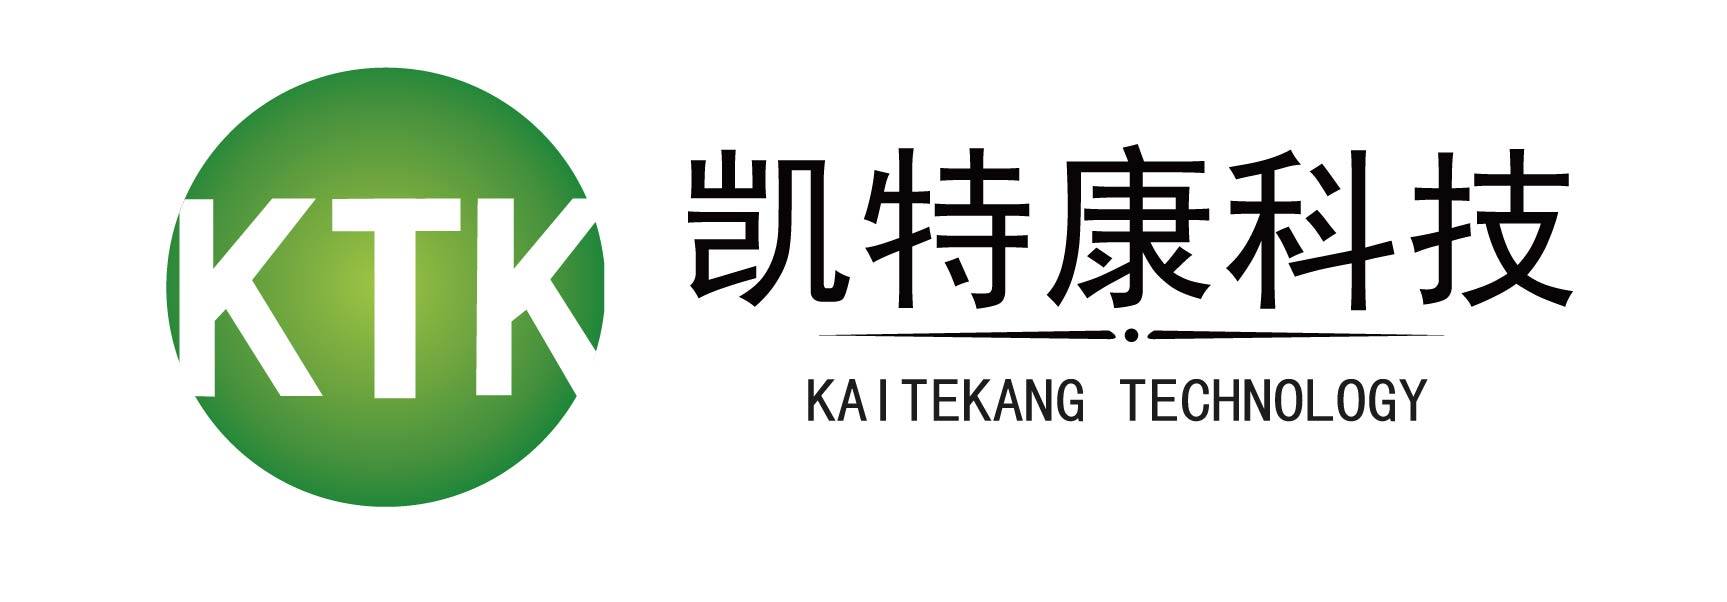 Tianjin Tiandi Hengkang Tech Co.,Ltd. logo